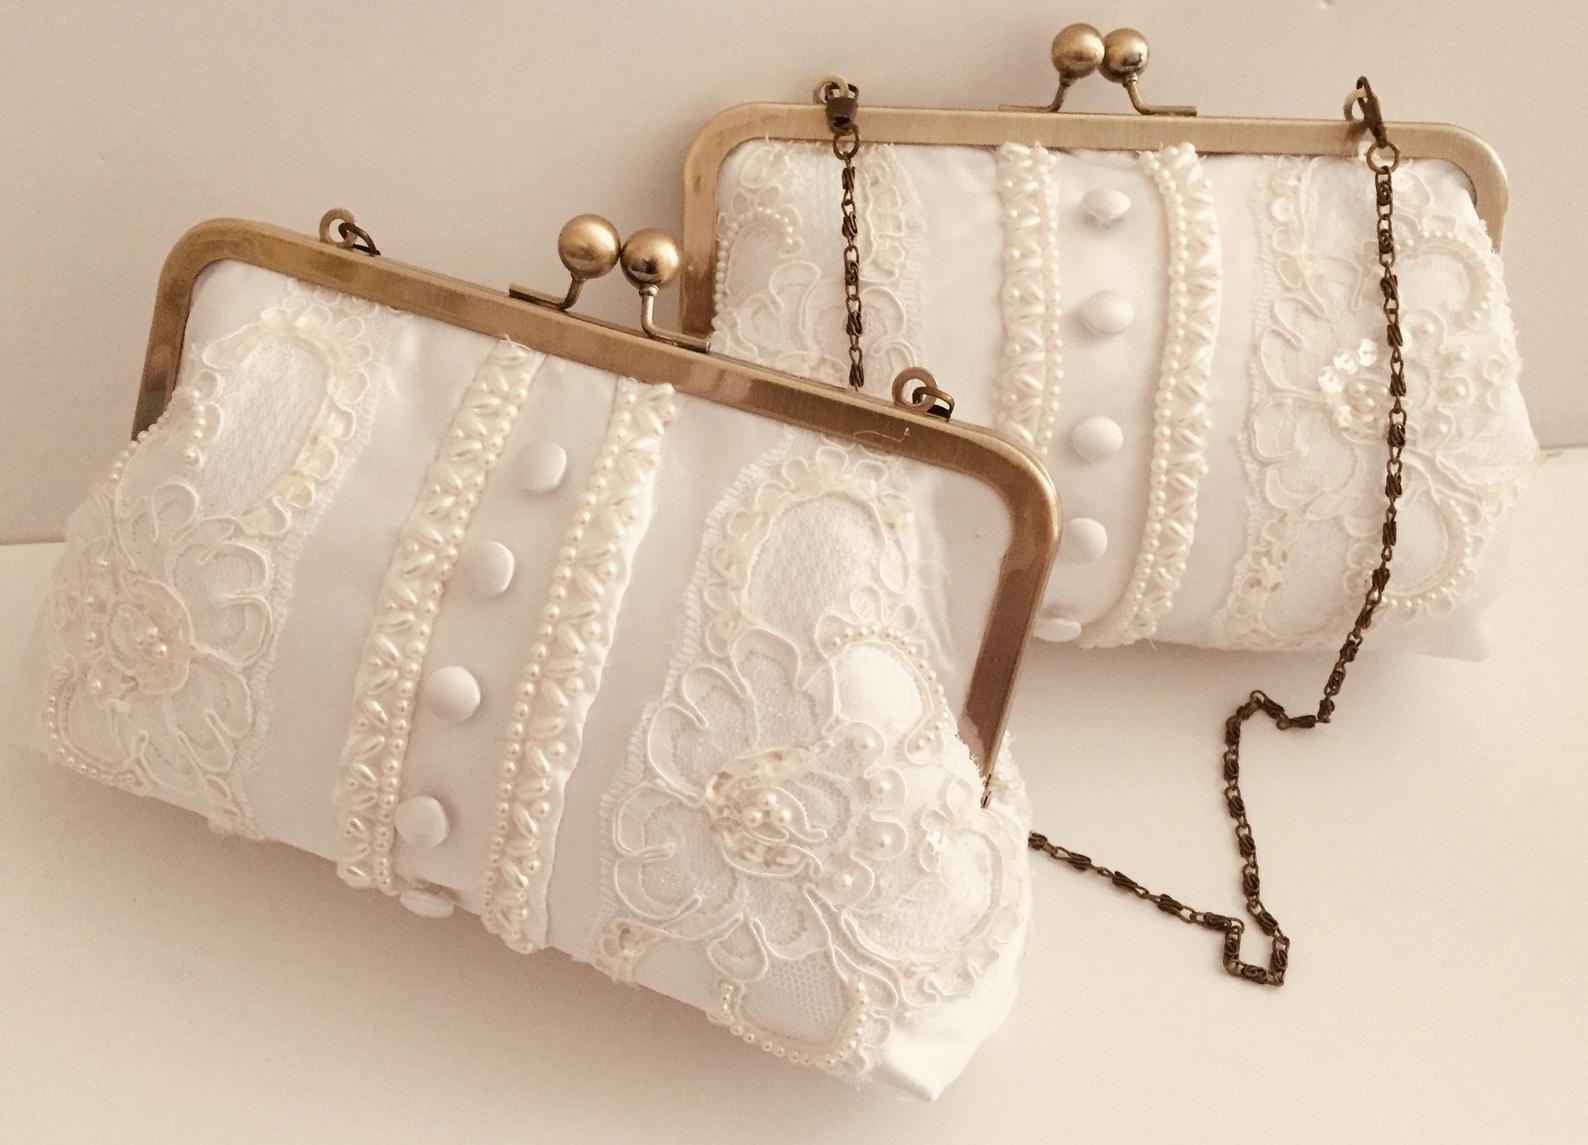 A clutch repurposed from a wedding dress